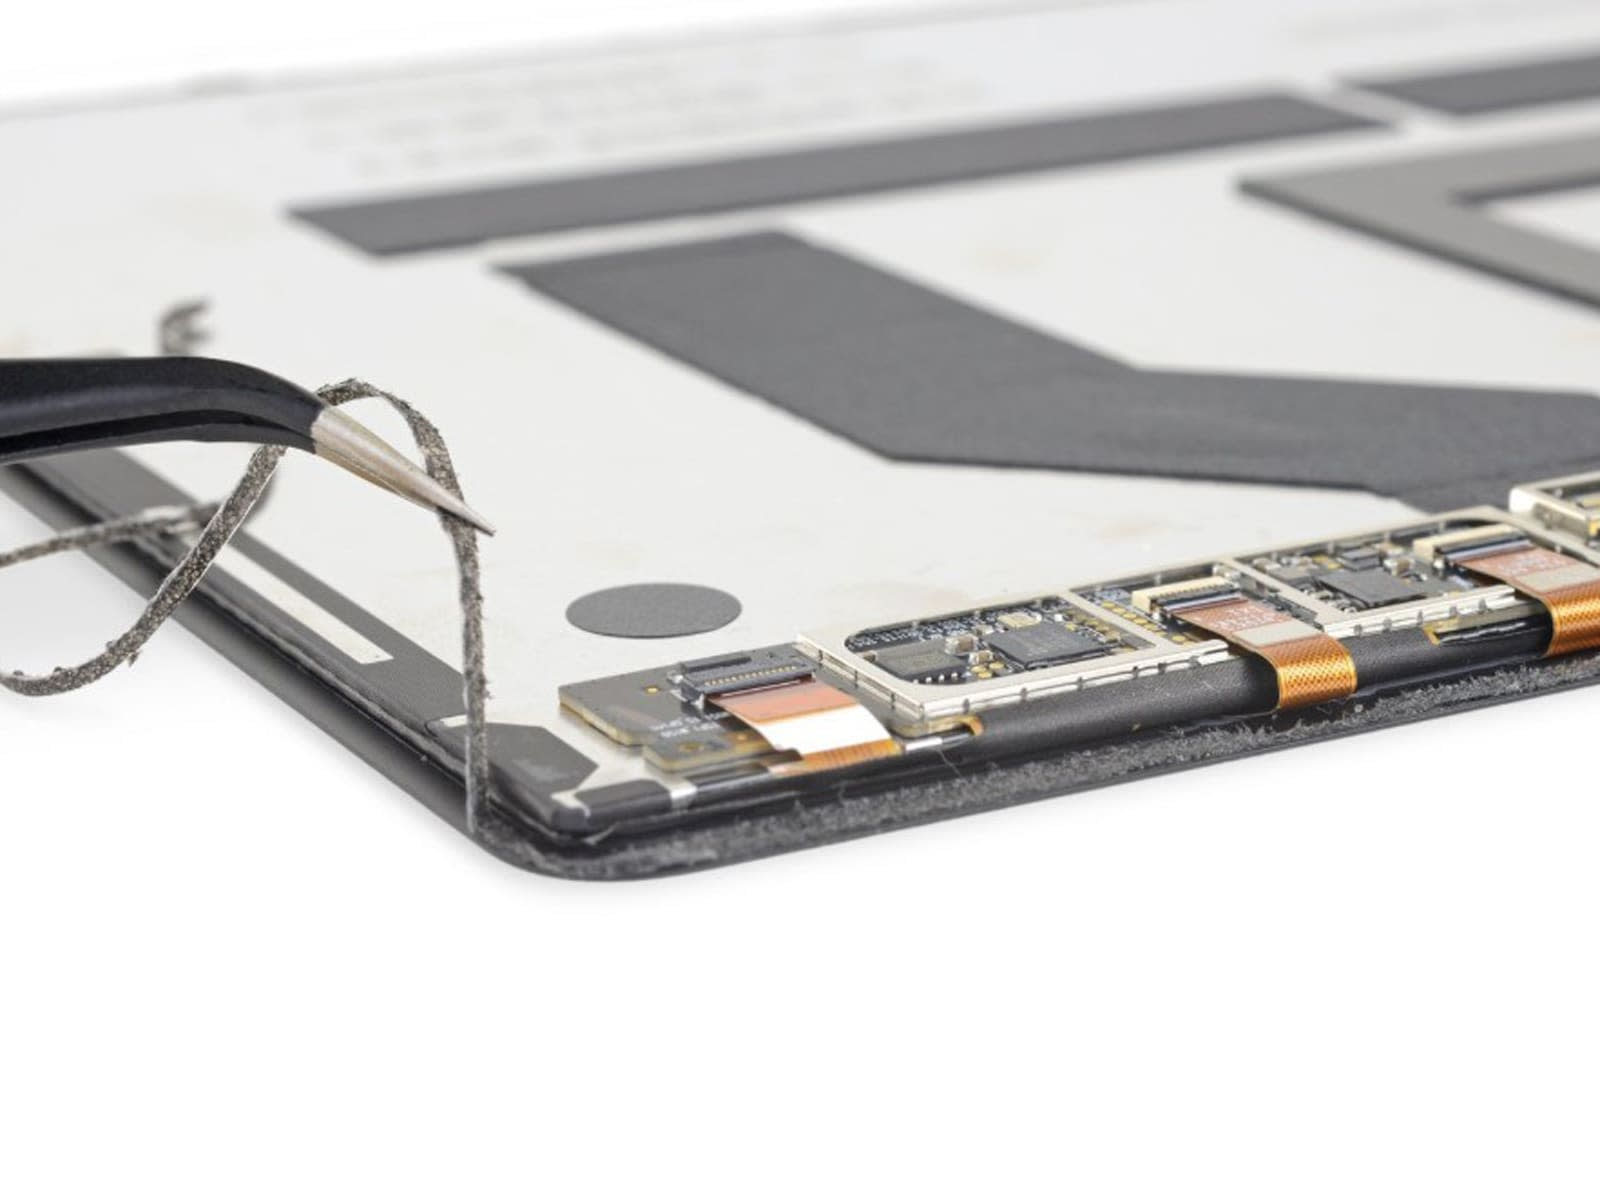 Surface Pro X teardown